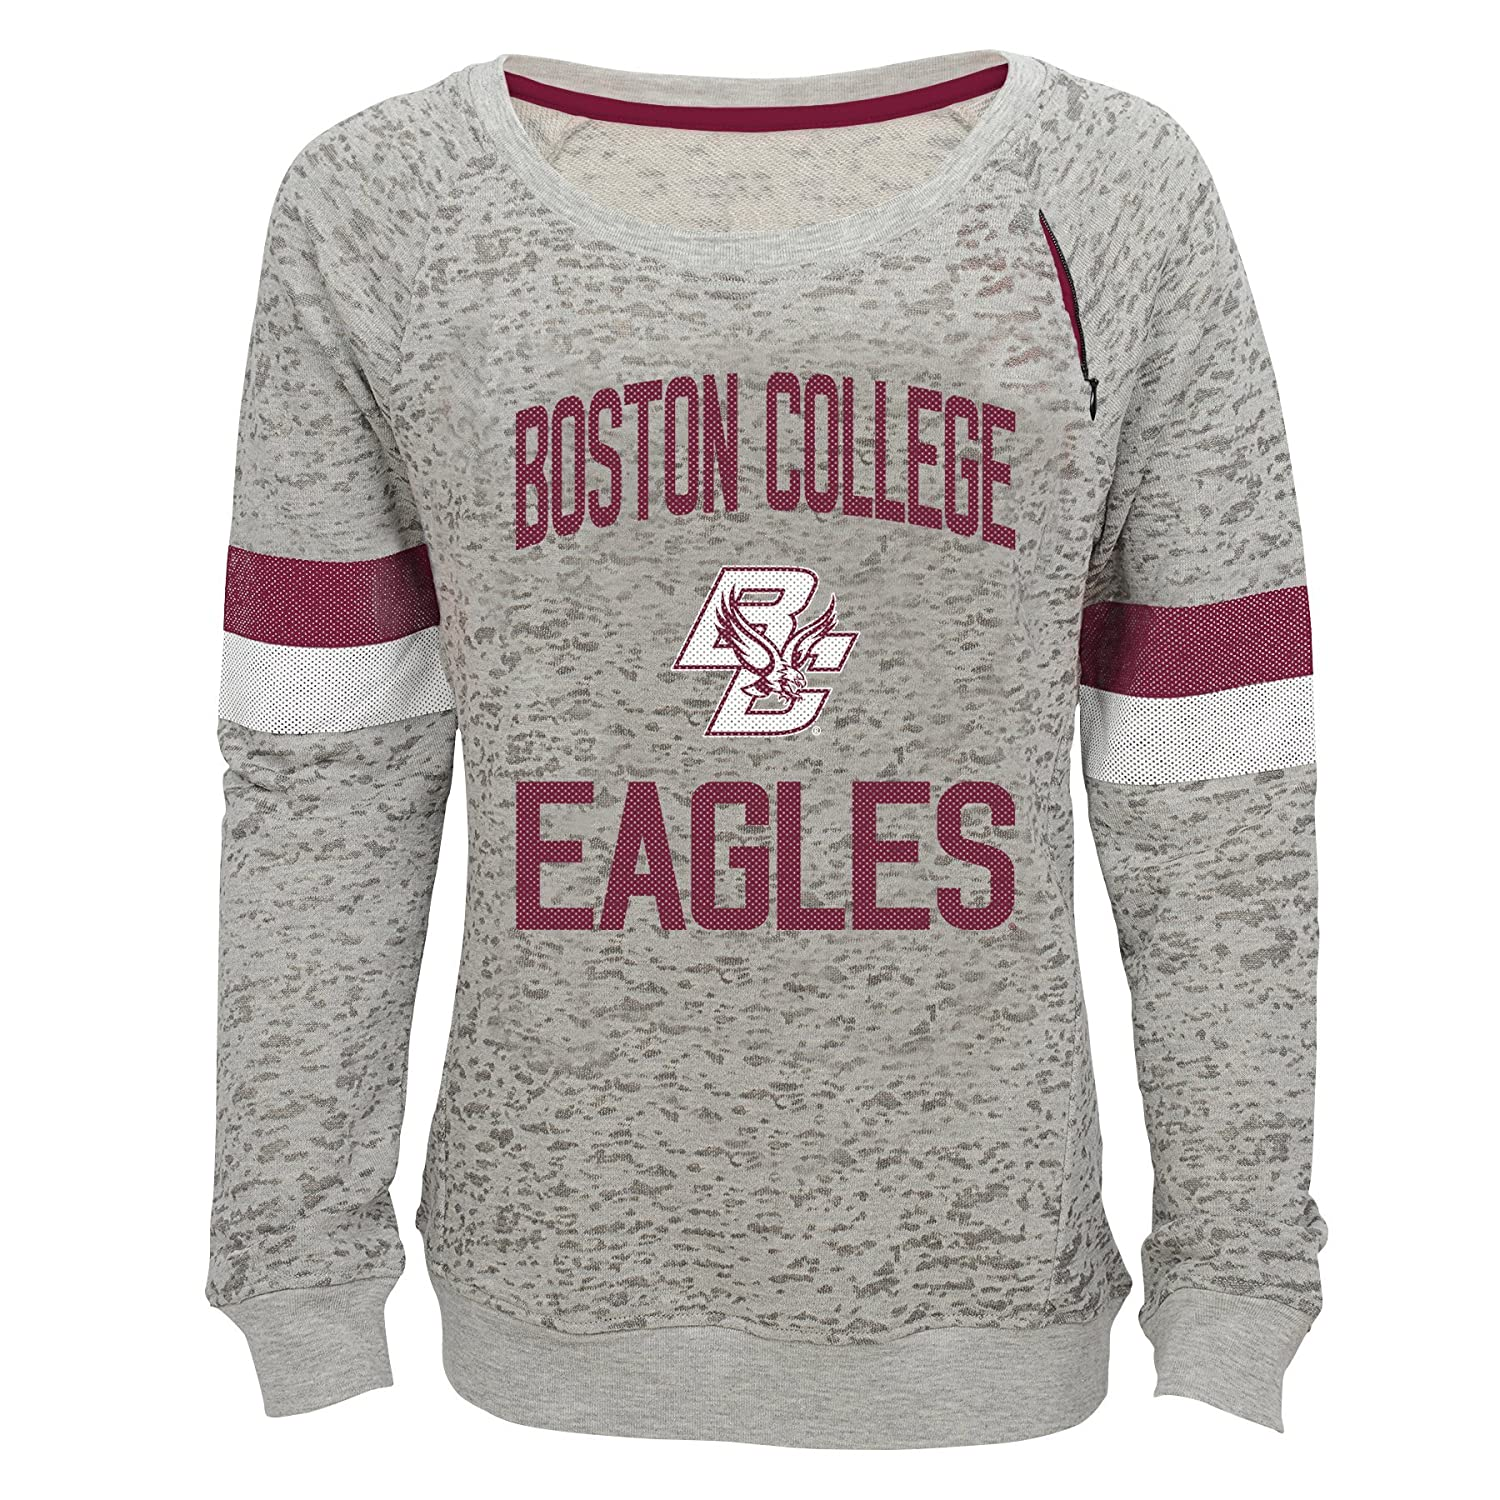 Youth Medium NCAA by Outerstuff NCAA Boston College Eagles Youth Girls My City Boat Neck Pullover 10-12 Heather Grey